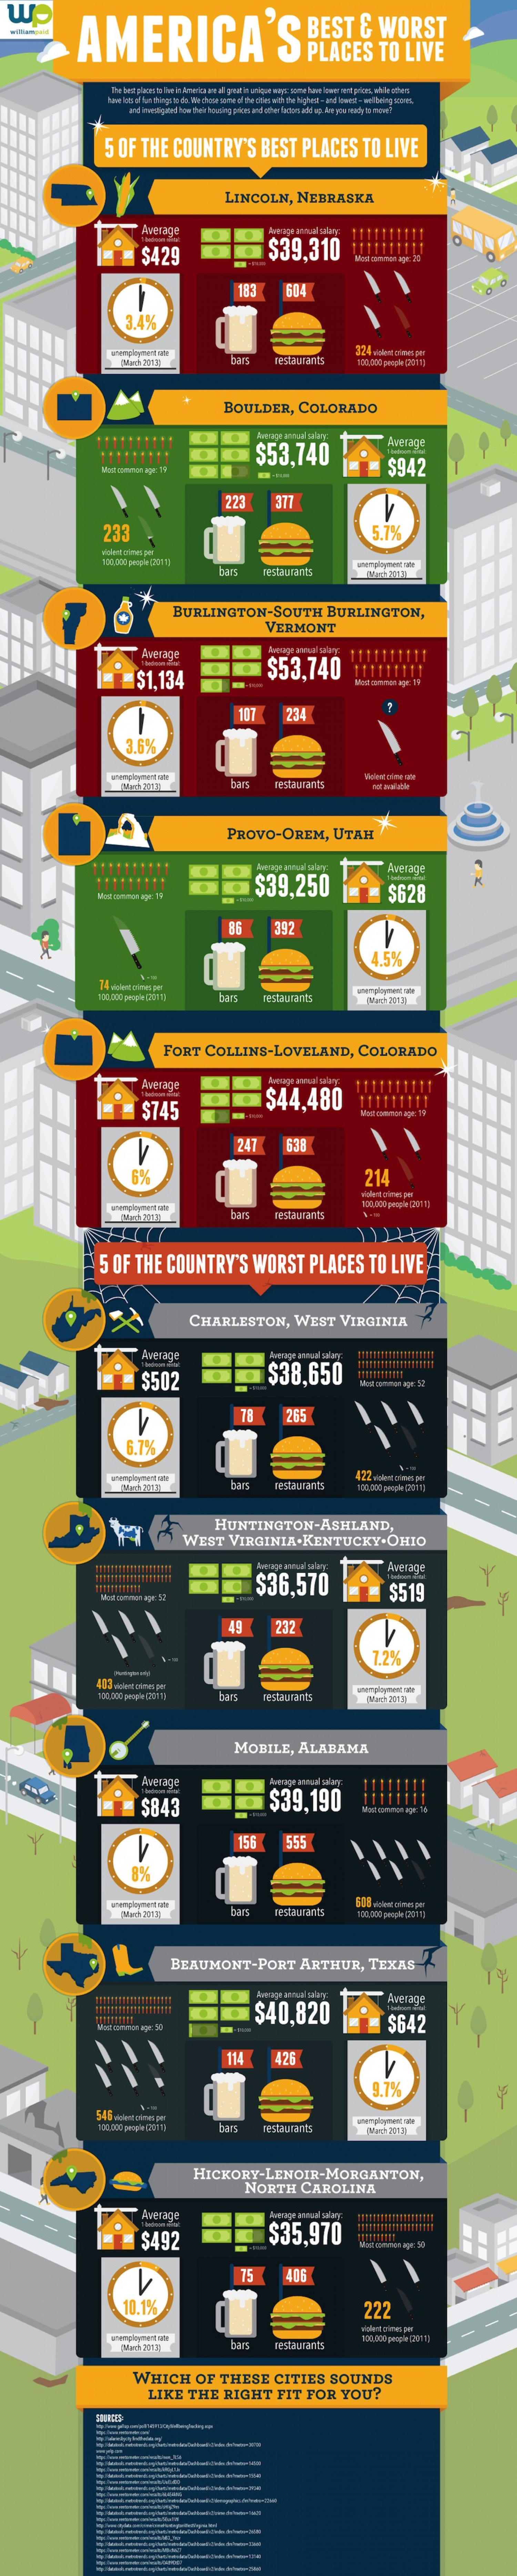 America's Best & Worst Place To Live Infographic